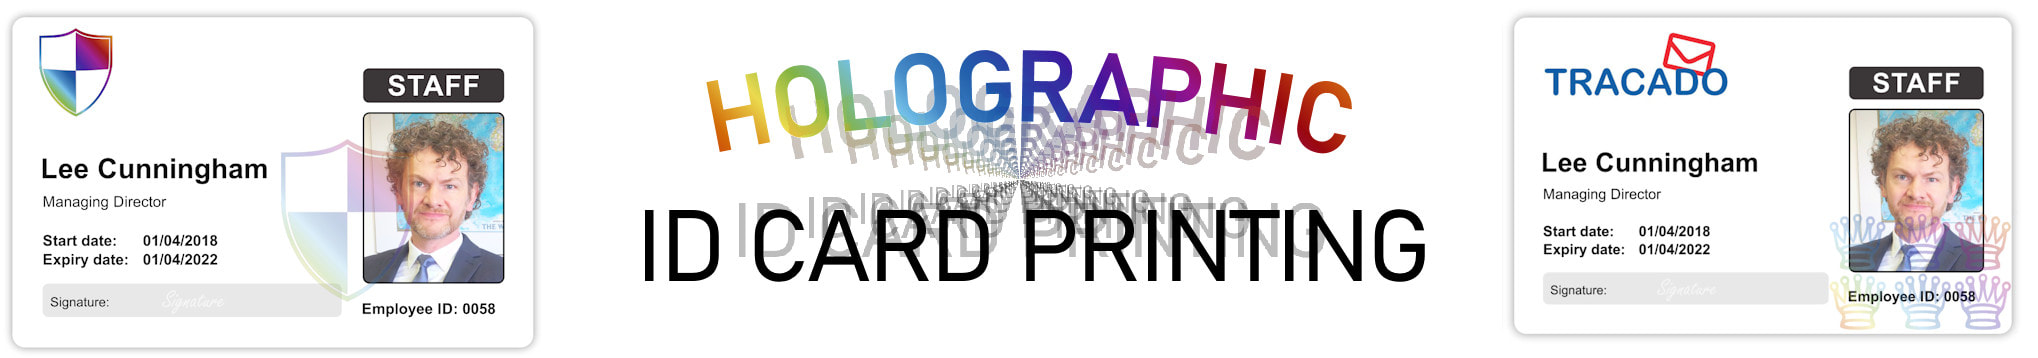 Manchester holographic ID card print service. Employee Identity cards with hologram or holograph security mark.